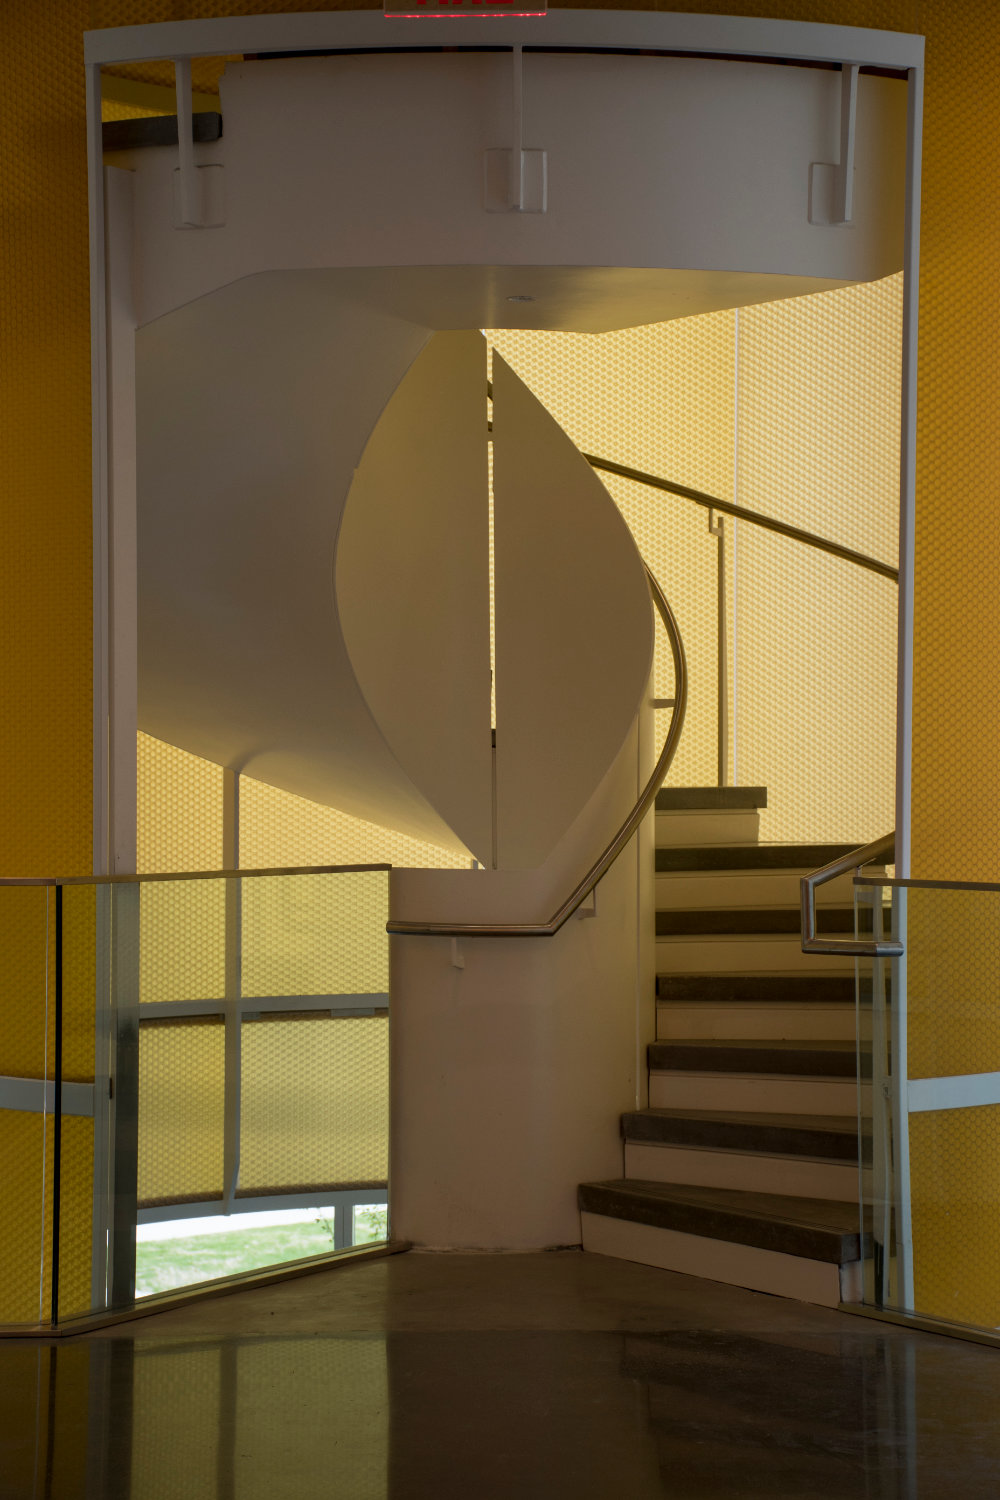 Spiral staircase in the Fascitelli Center for Advanced Engineering